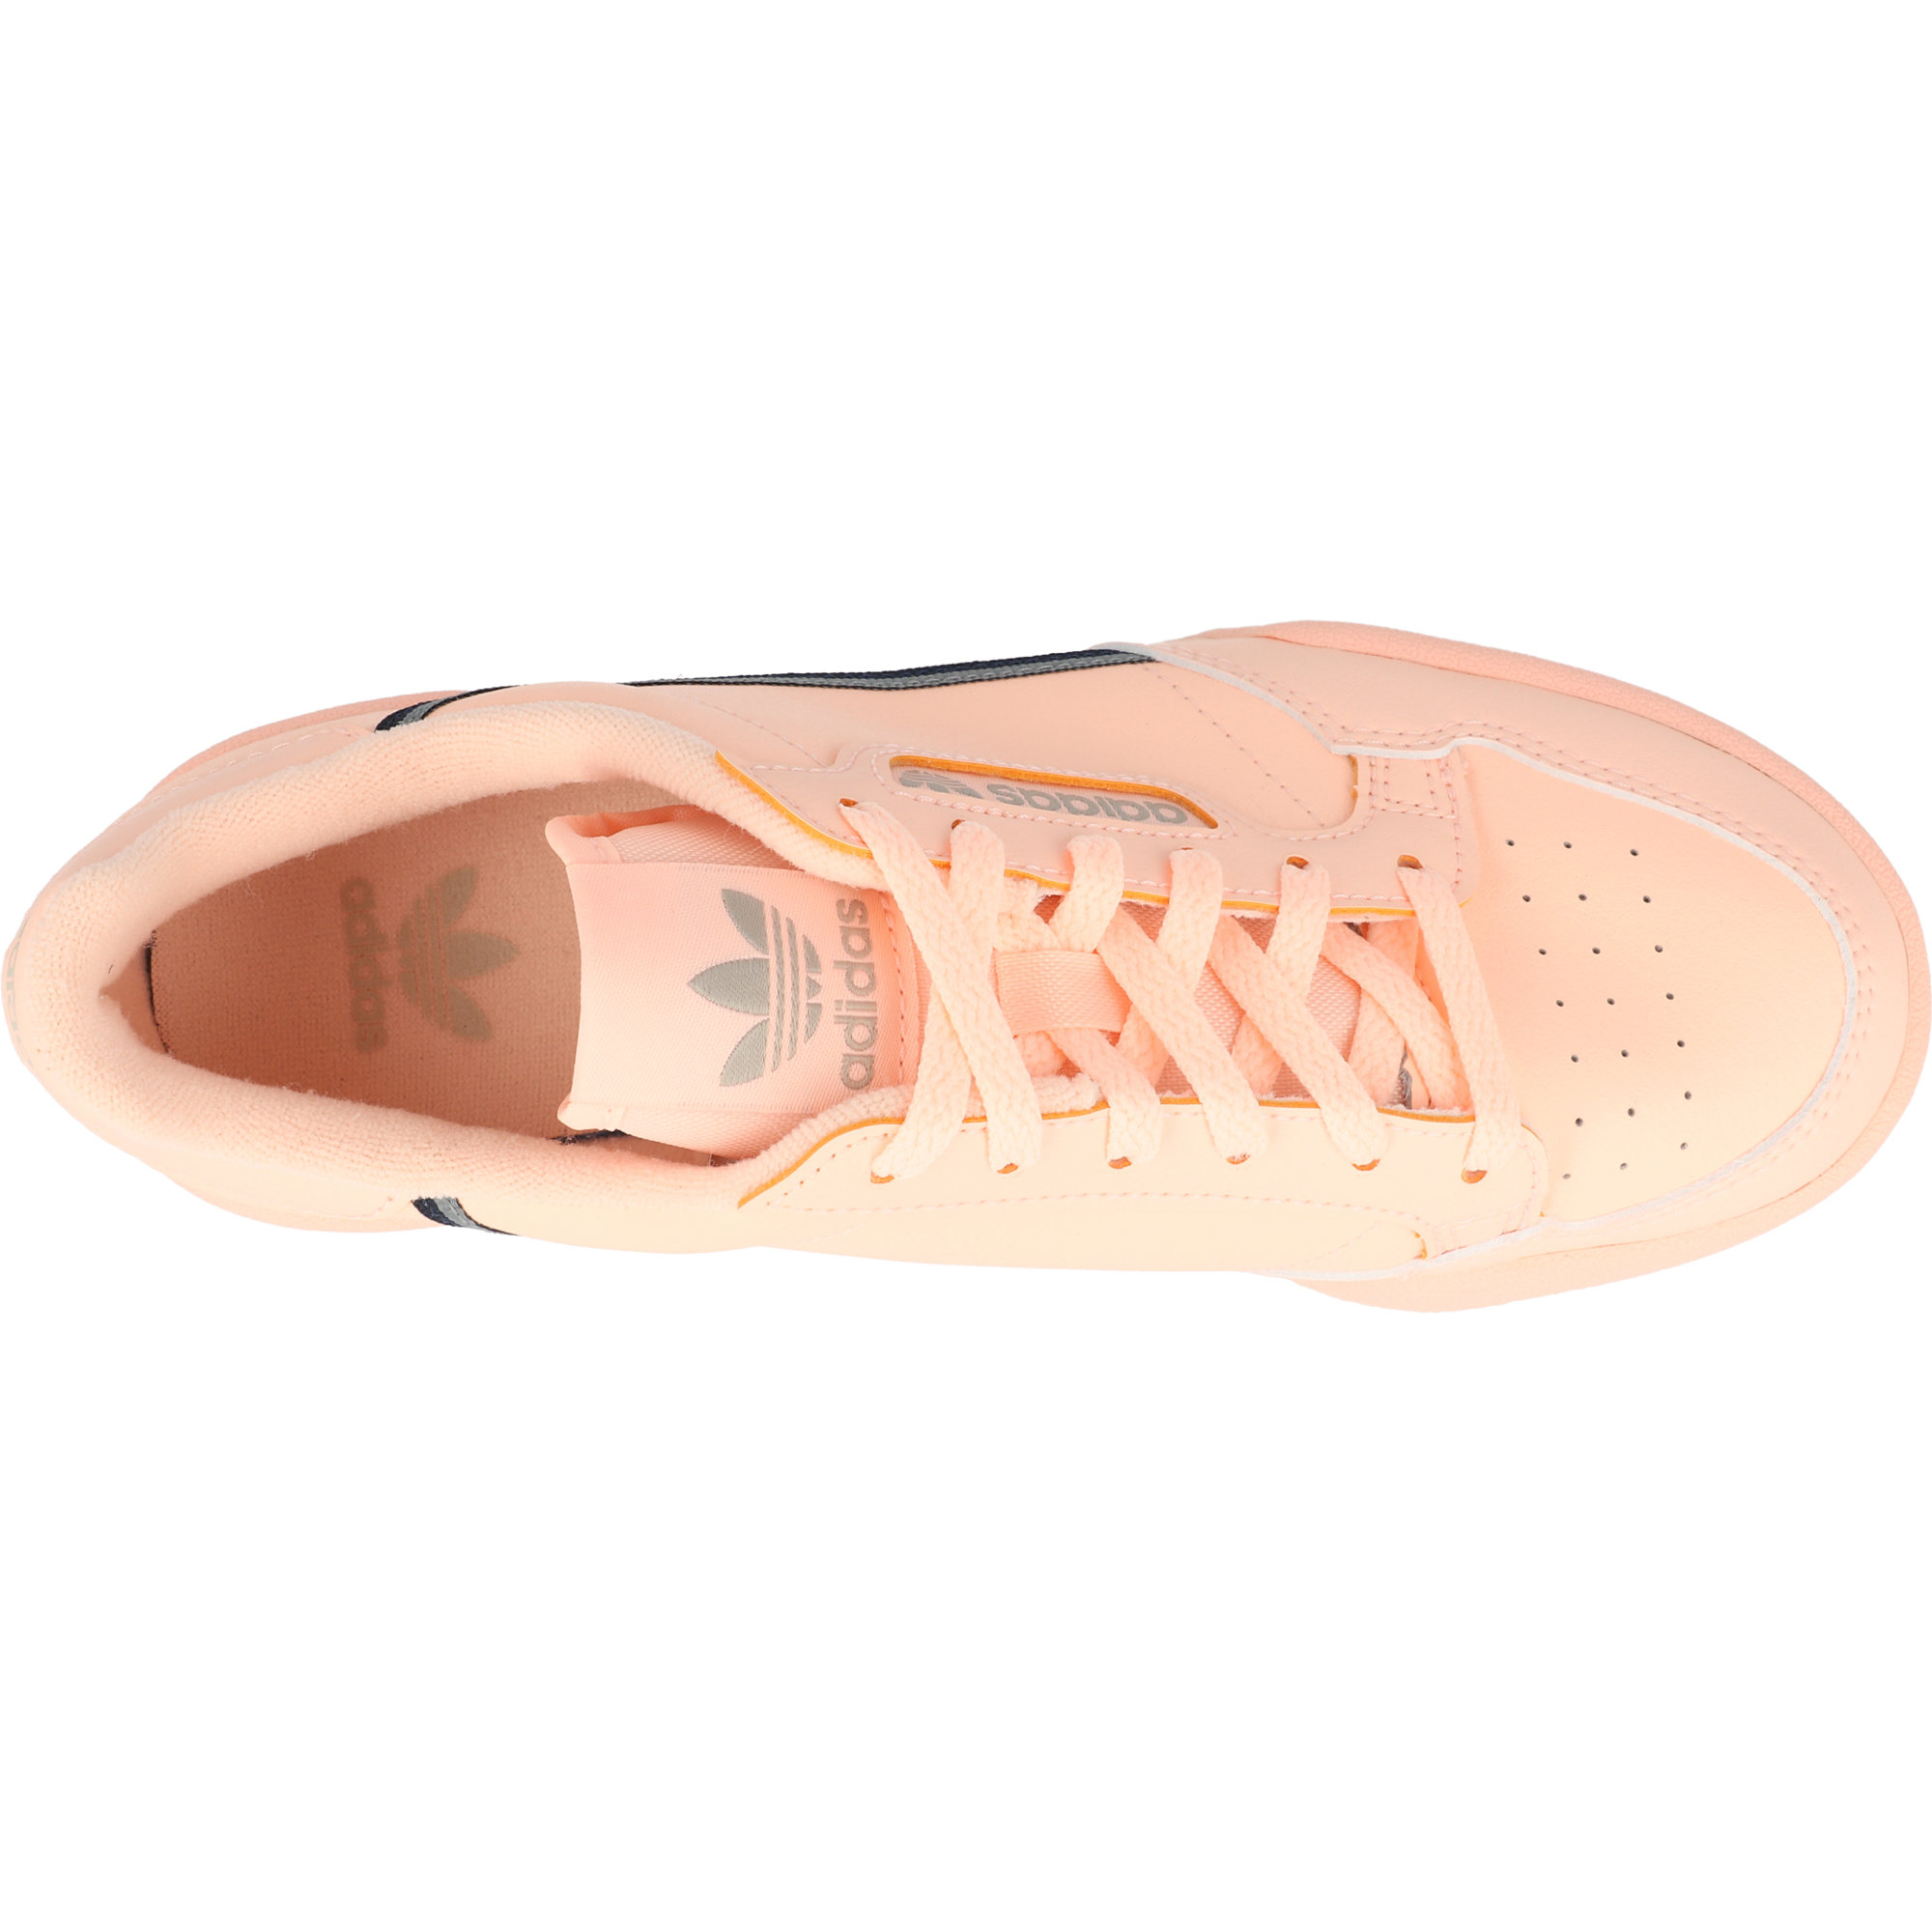 adidas Originals Continental 80 J Clear Orange Leather Youth